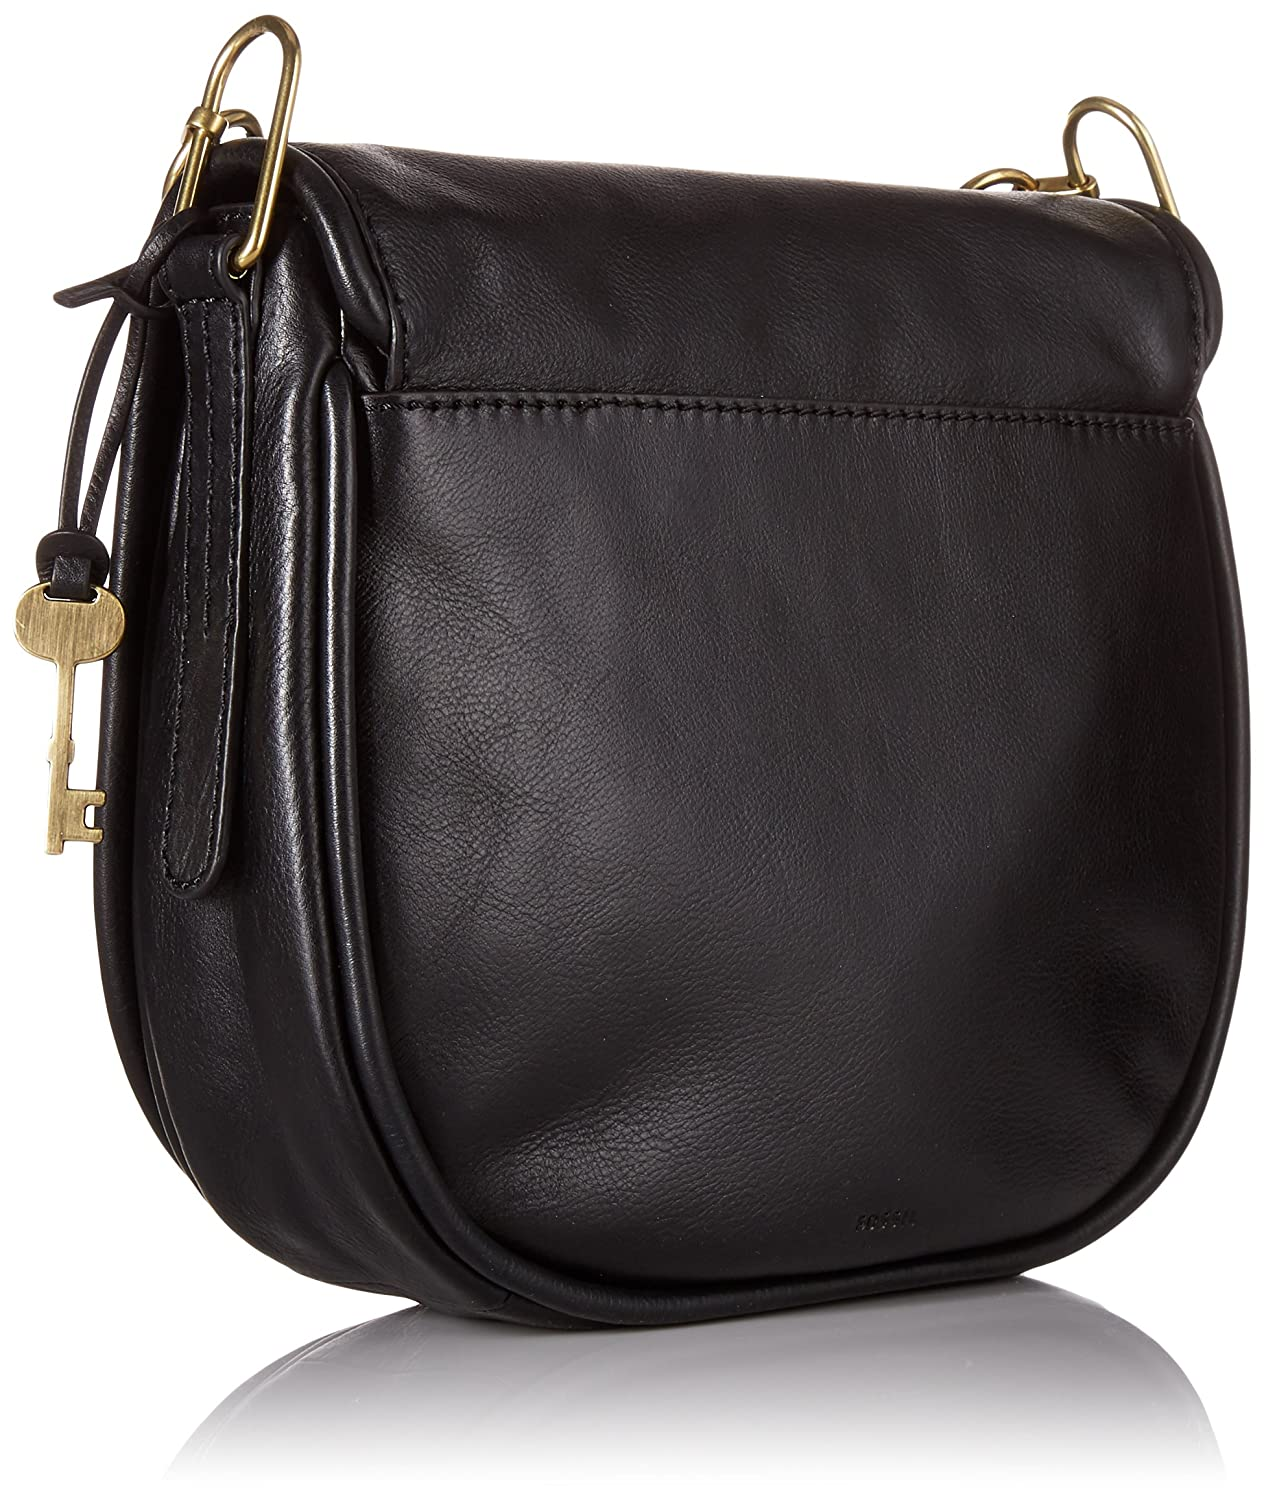 9bad417b3d4d Fossil Rumi Crossbody